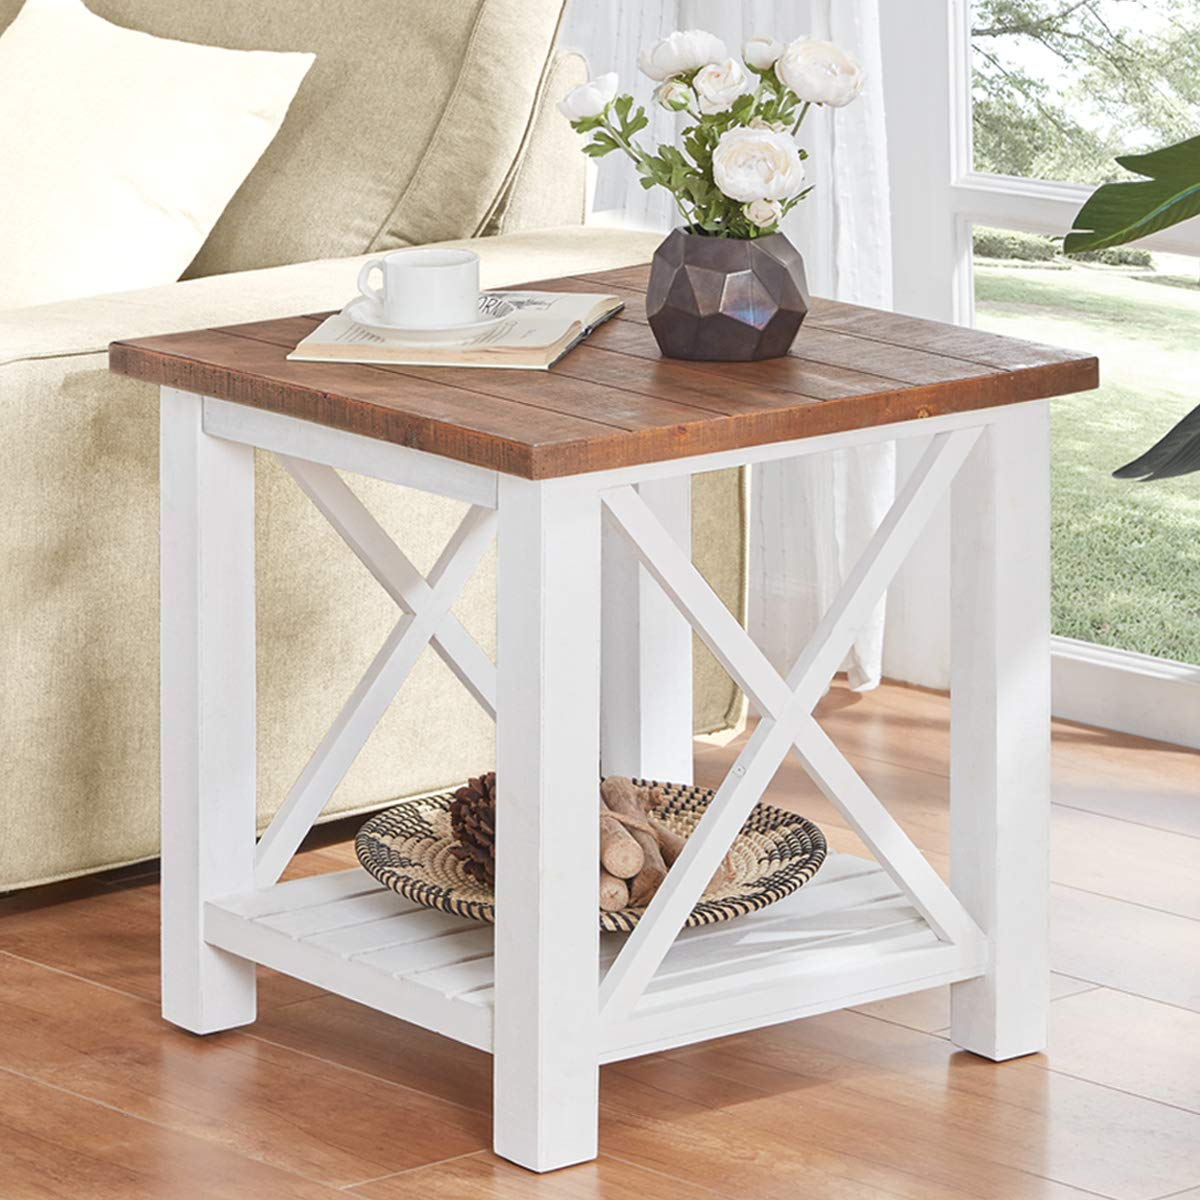 furnichoi farmhouse wood end table for living room vintage rustic side white and brown kitchen dining wedge plans foot sofa chinese grey silver lamps the furniture mission small